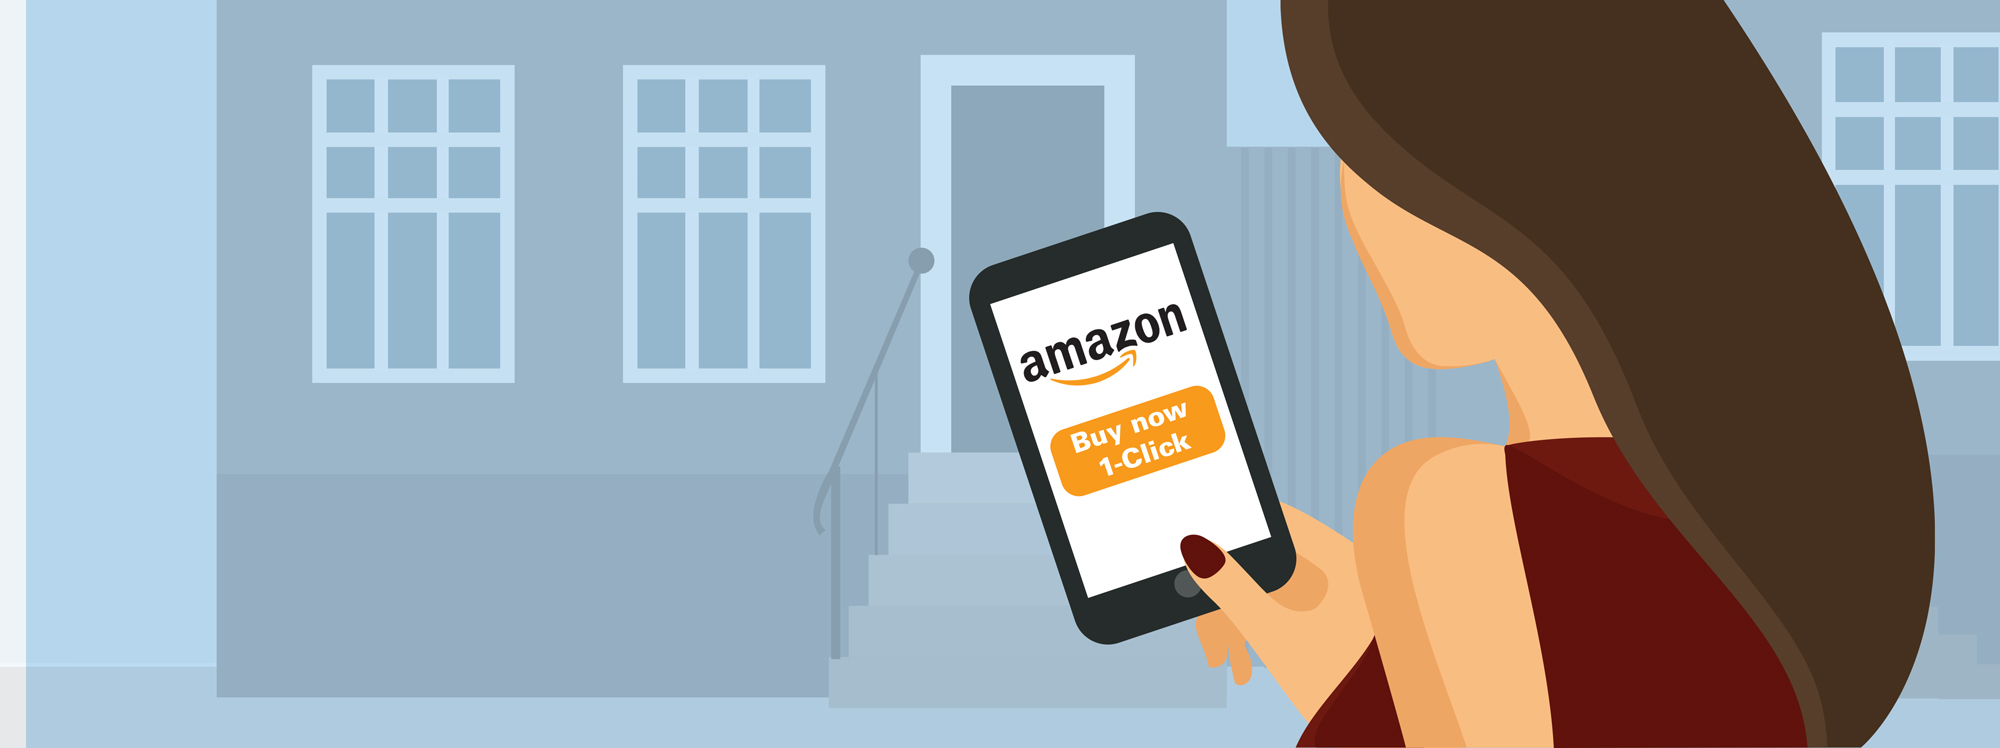 Person holding phone with Amazon purchase screen